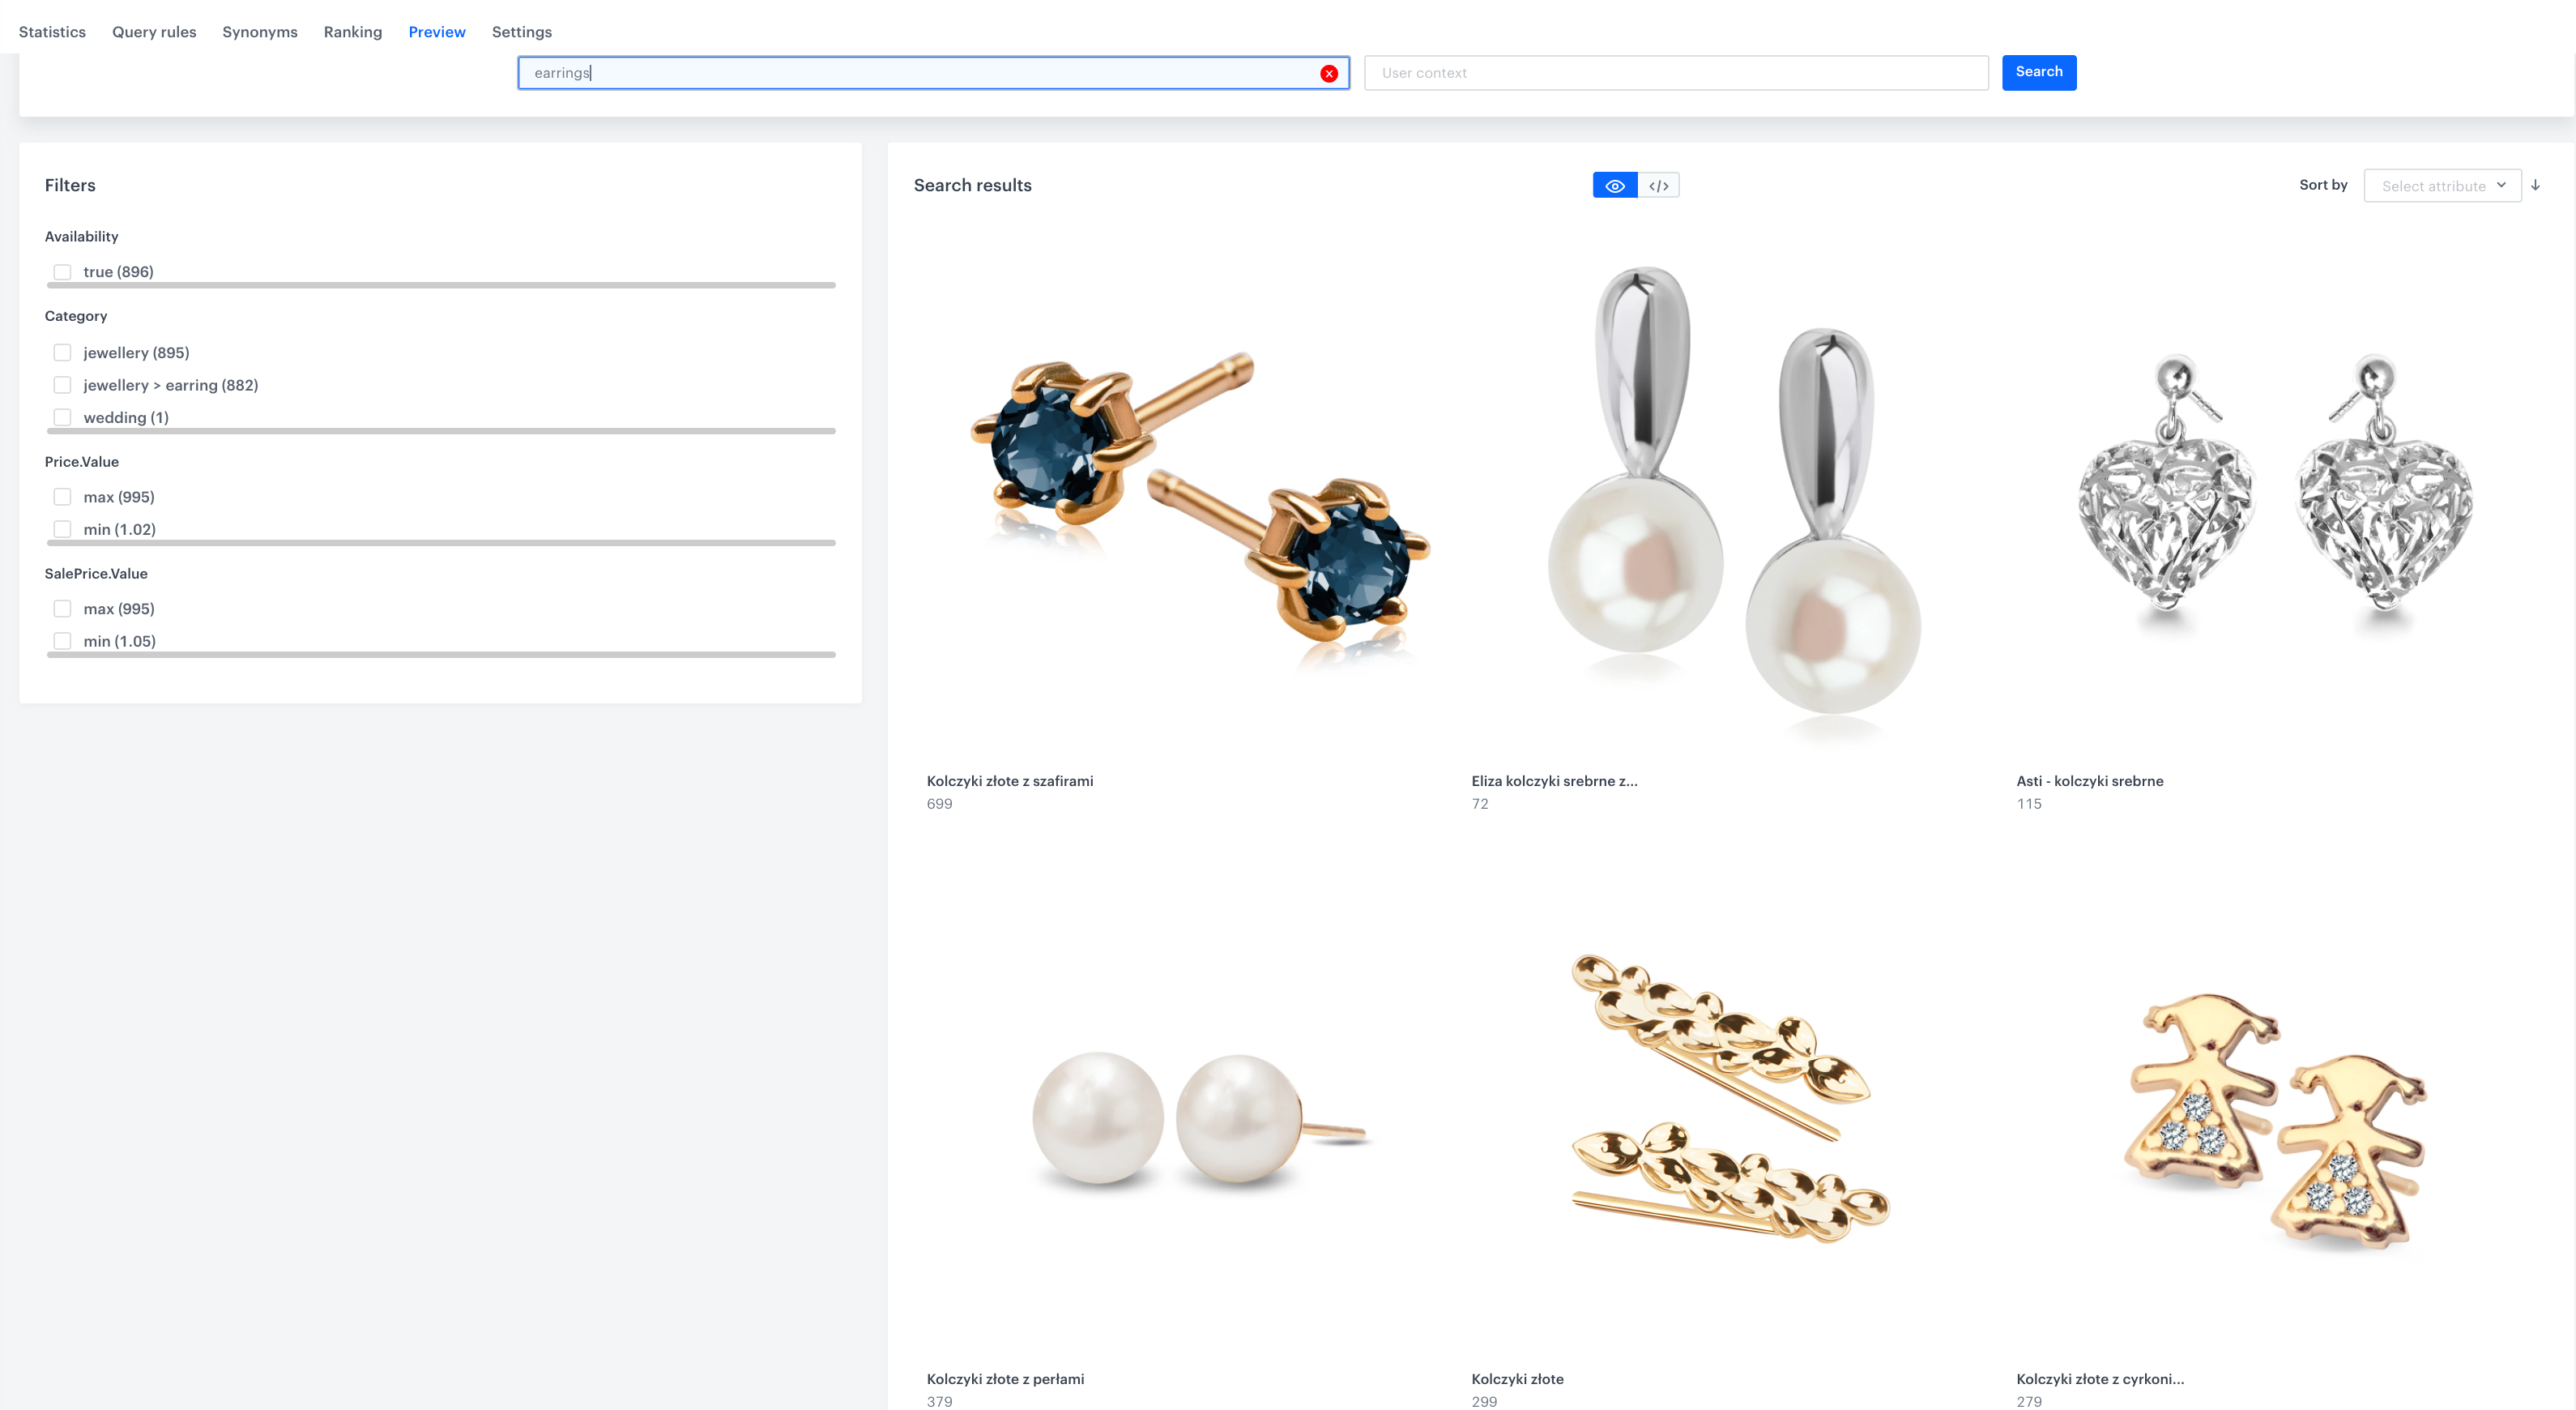 Personalized products listing for no search input